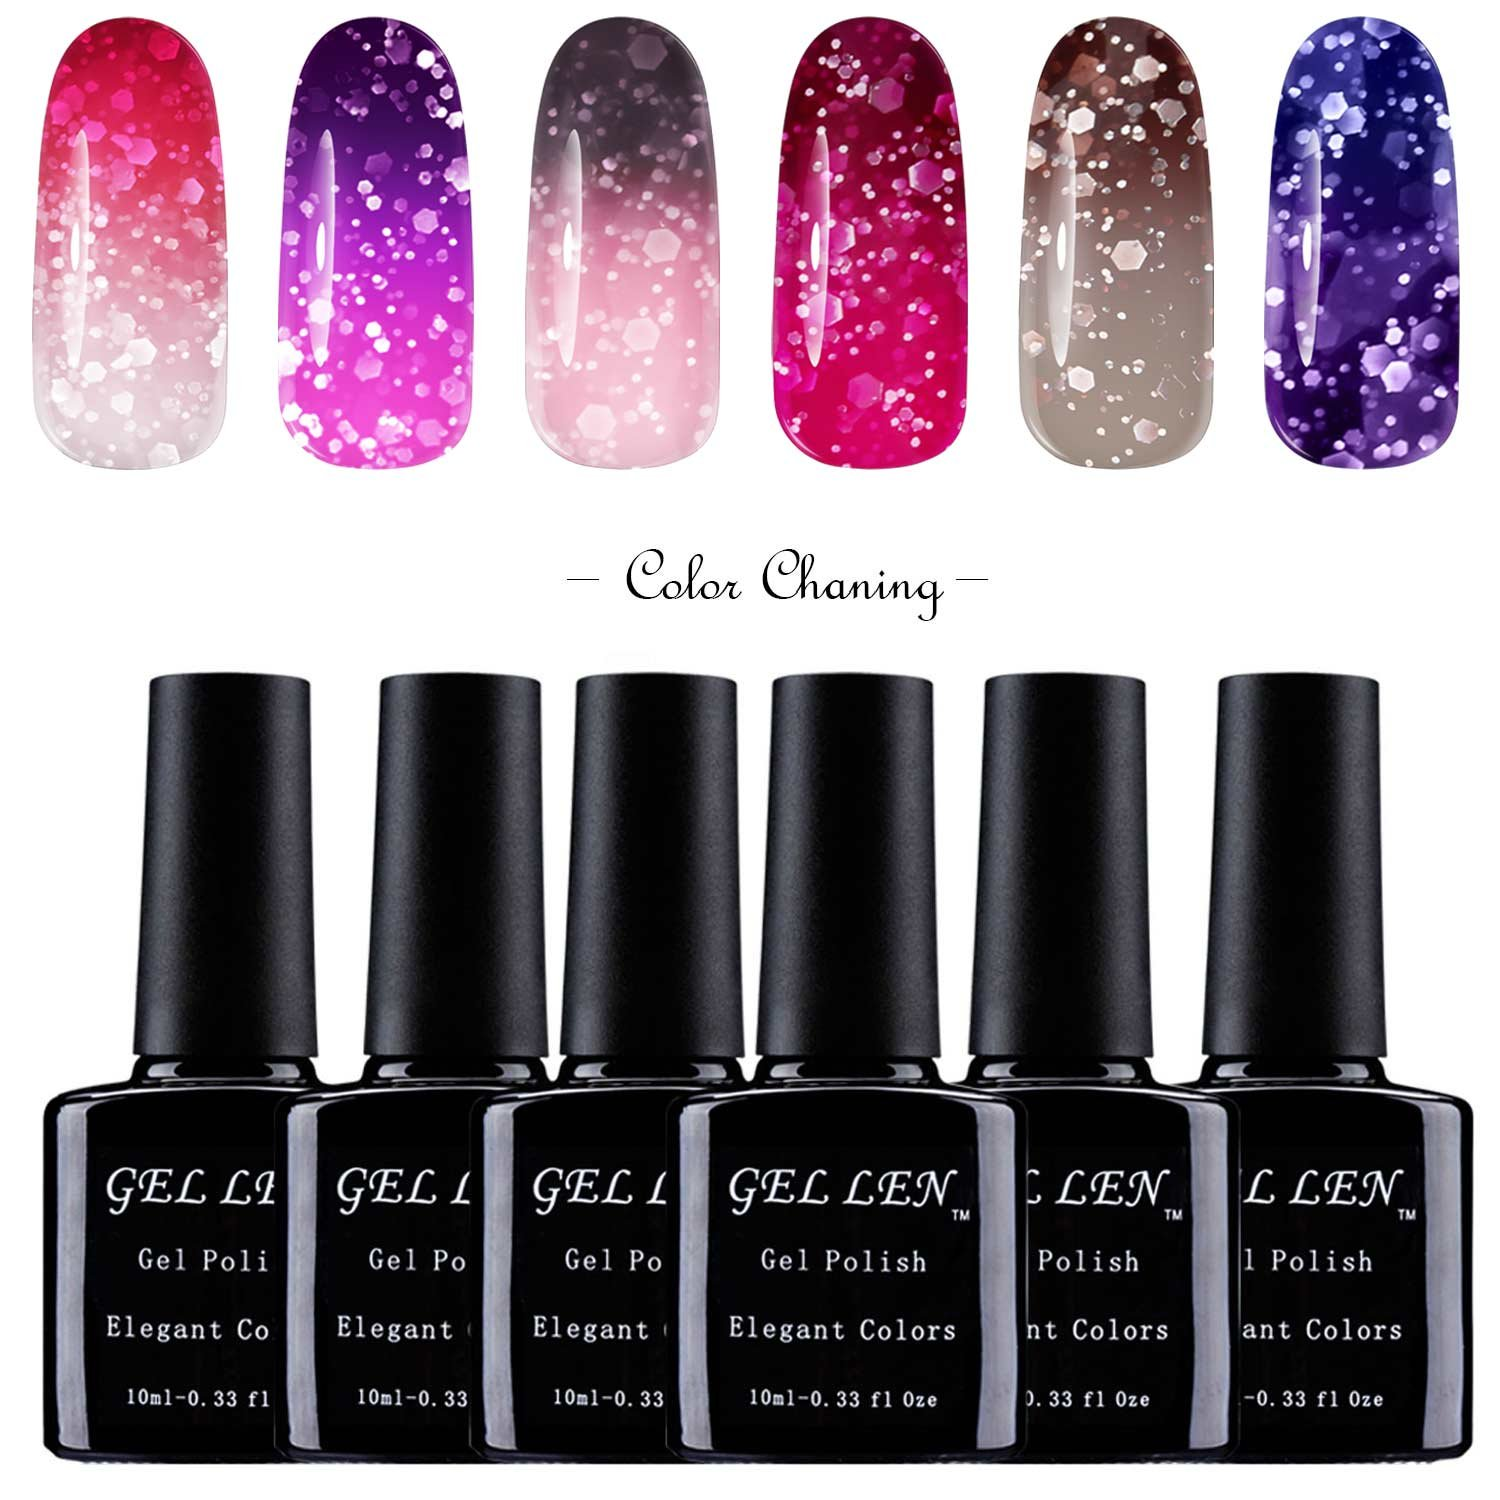 Uv Gel Nail Polish Starter Kit: Amazon.com : Gellen UV Gel Nail Polish Kit 6 Colors + Base